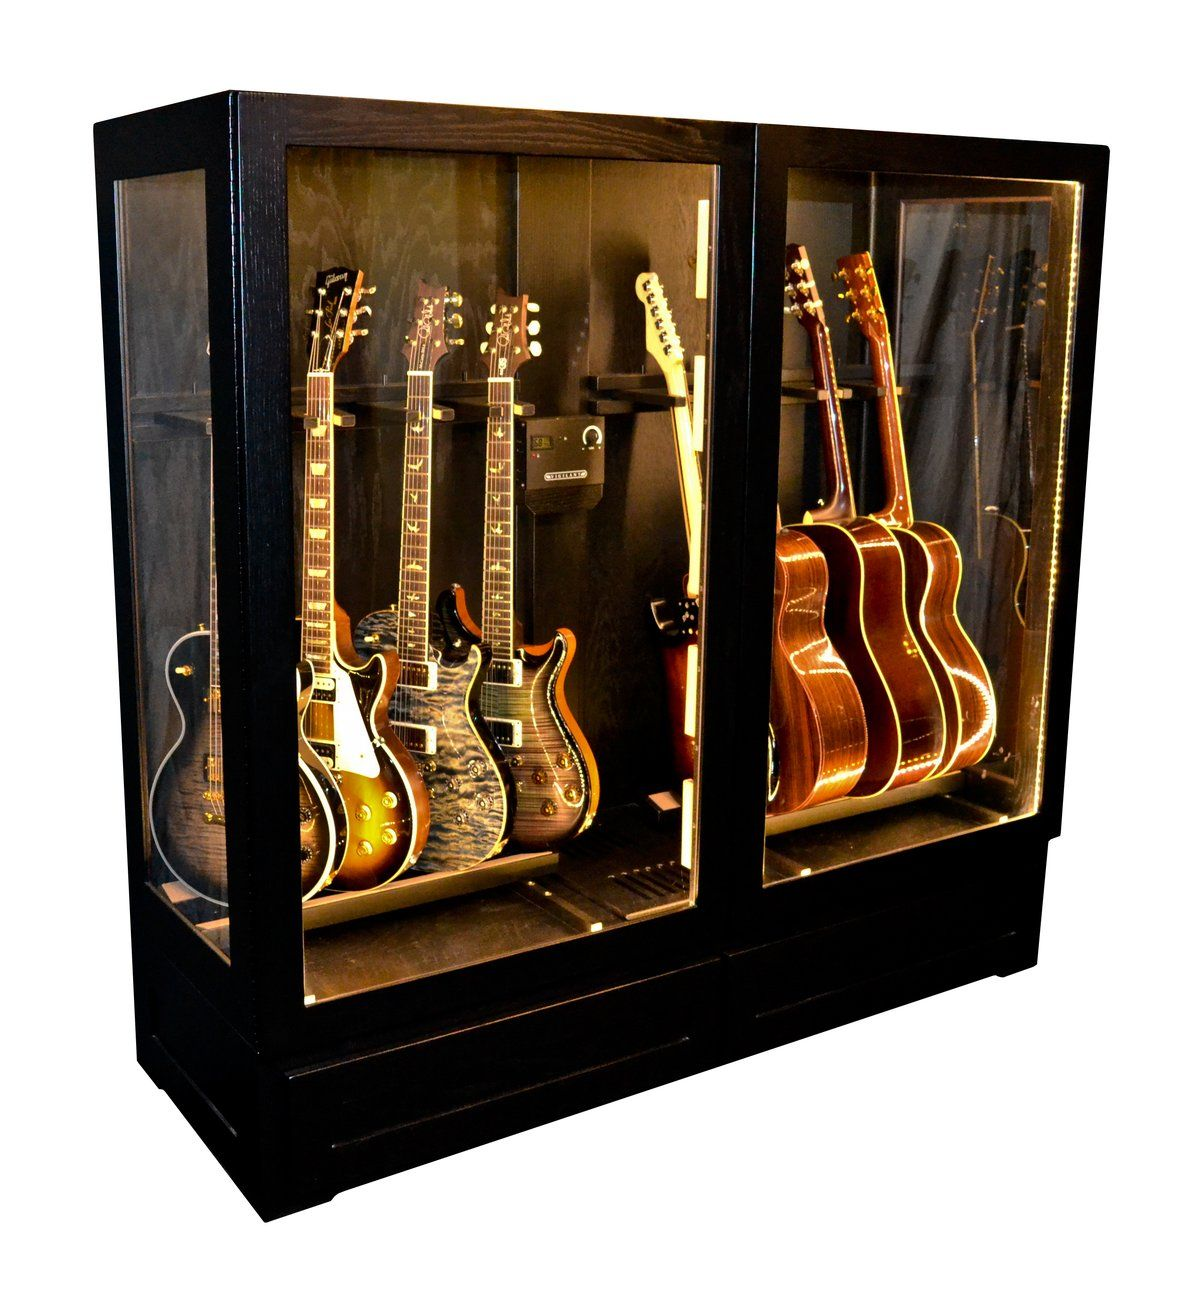 Multi Instrument Humidified Guitar Display Cabinet Guitar Display Guitar Display Case Guitar Storage Cabinet